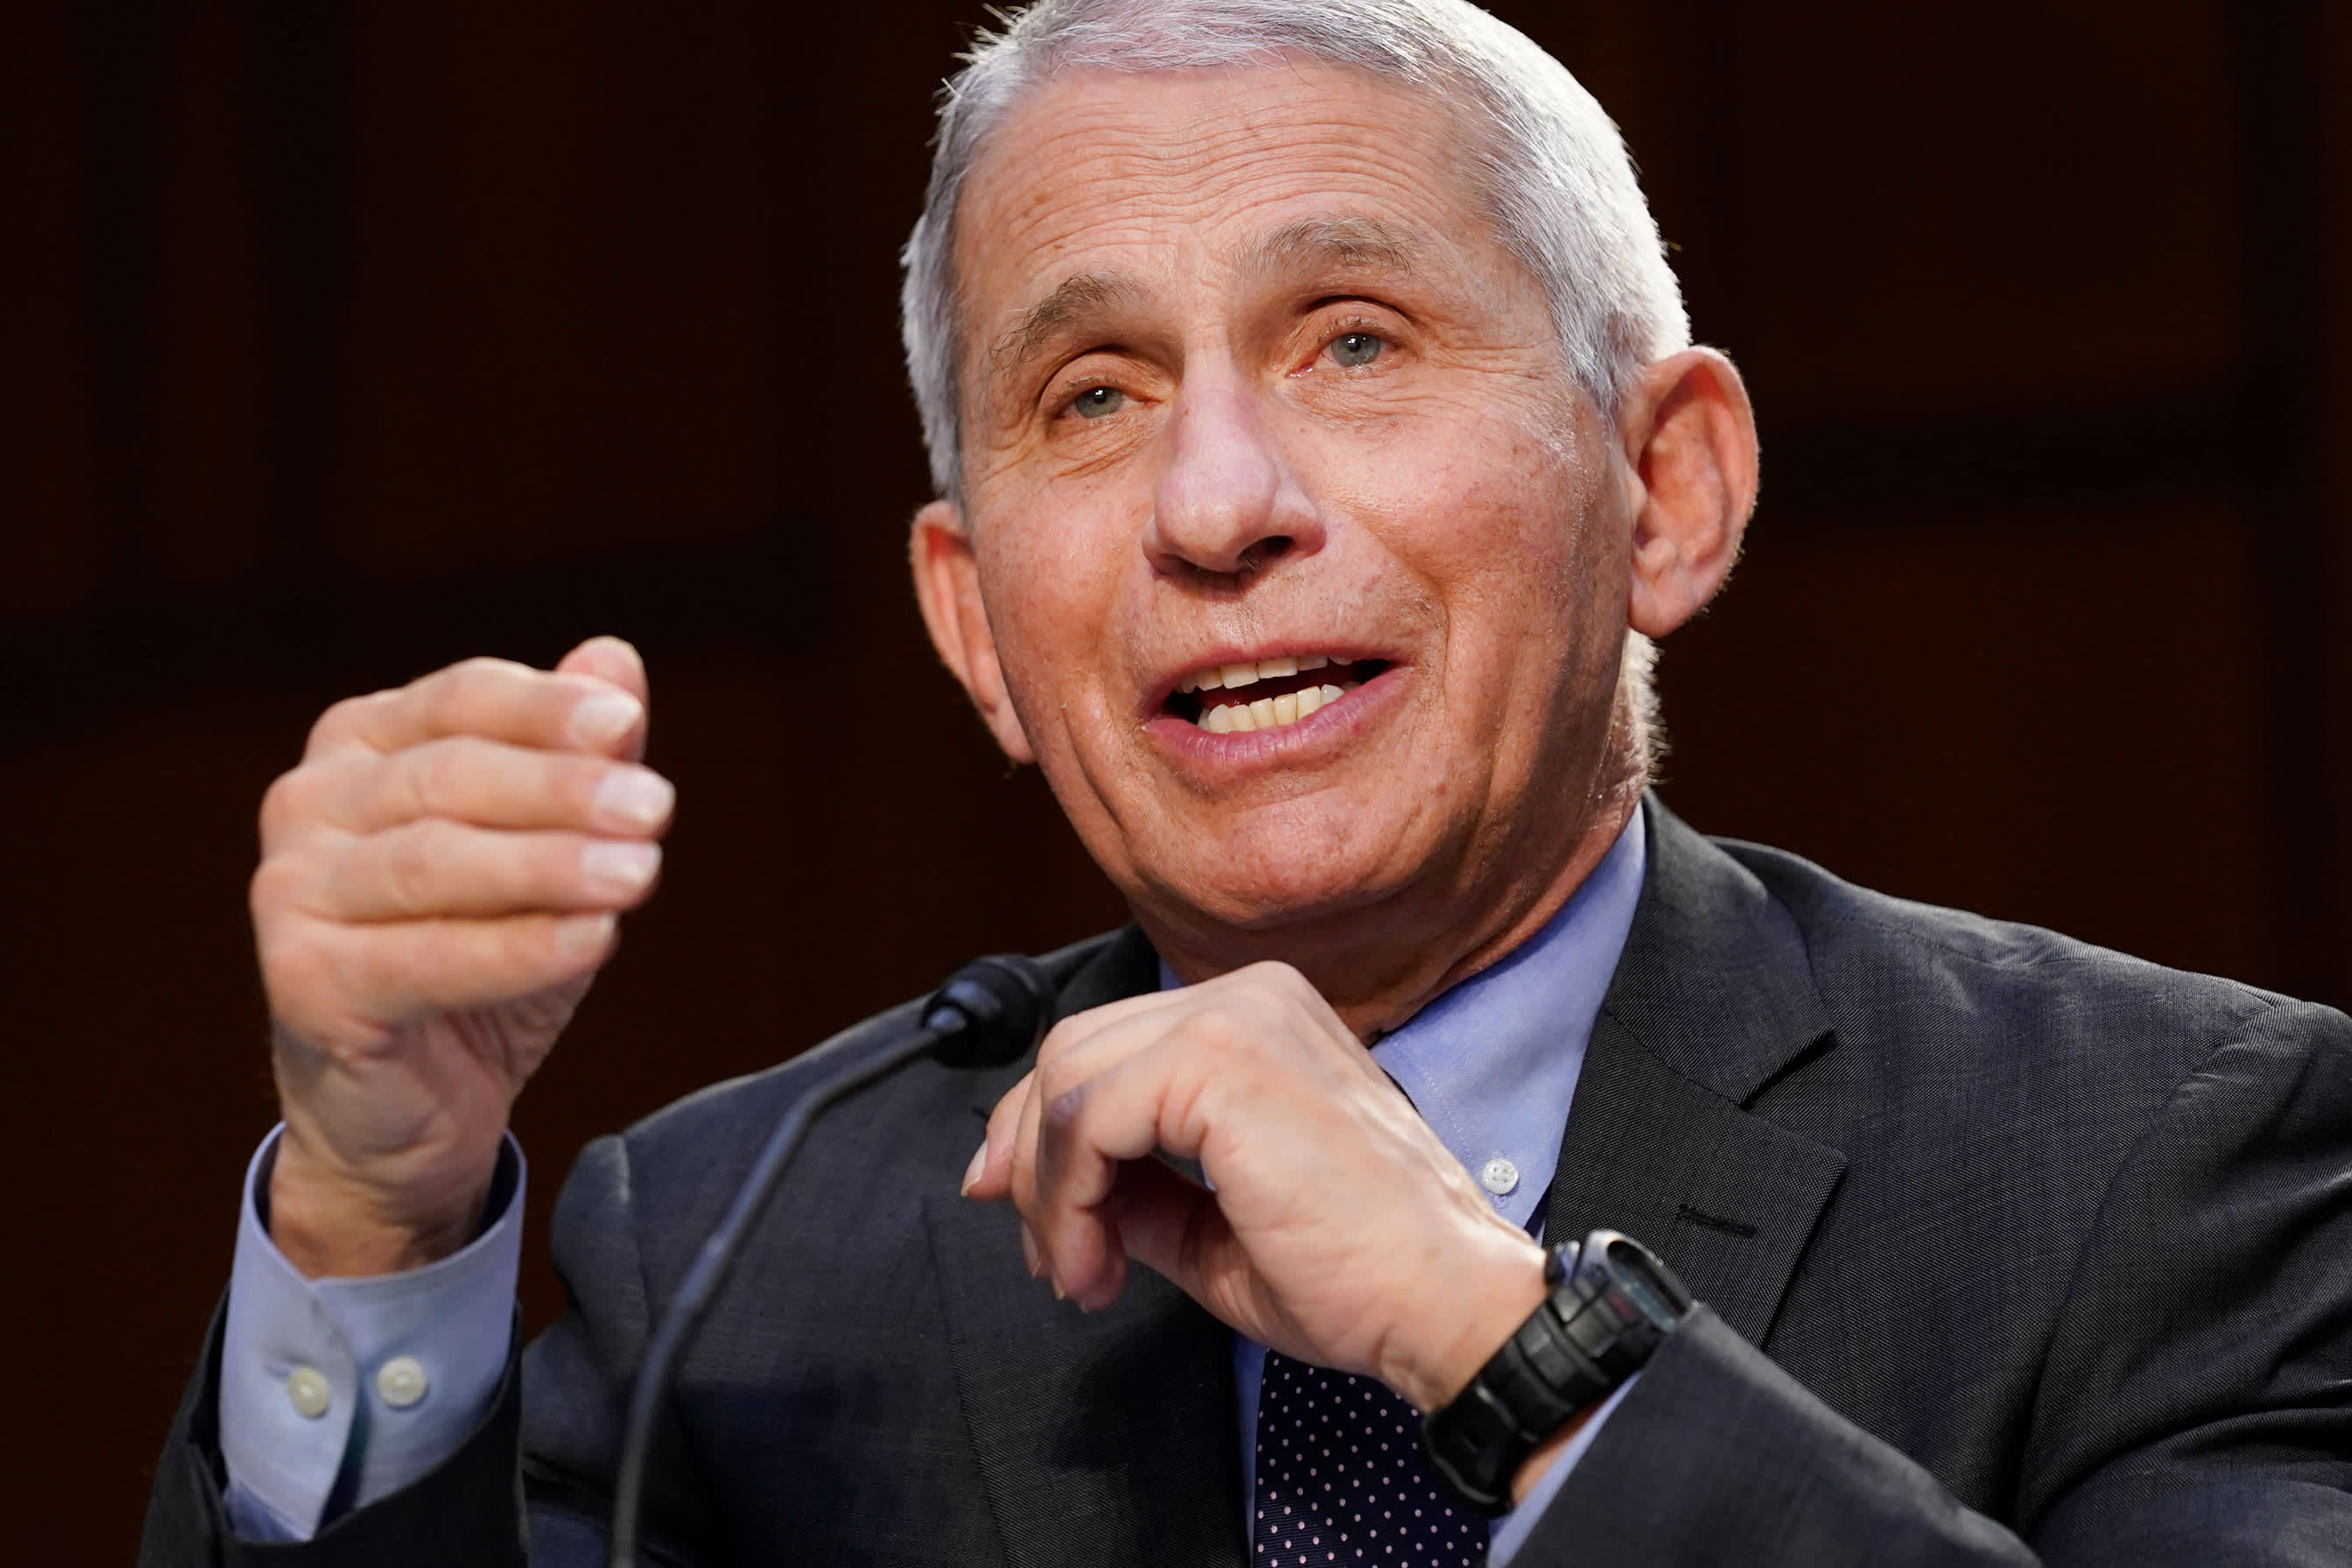 Fauci says U.S. must vaccinate more people before Delta becomes dominant Covid variant in America